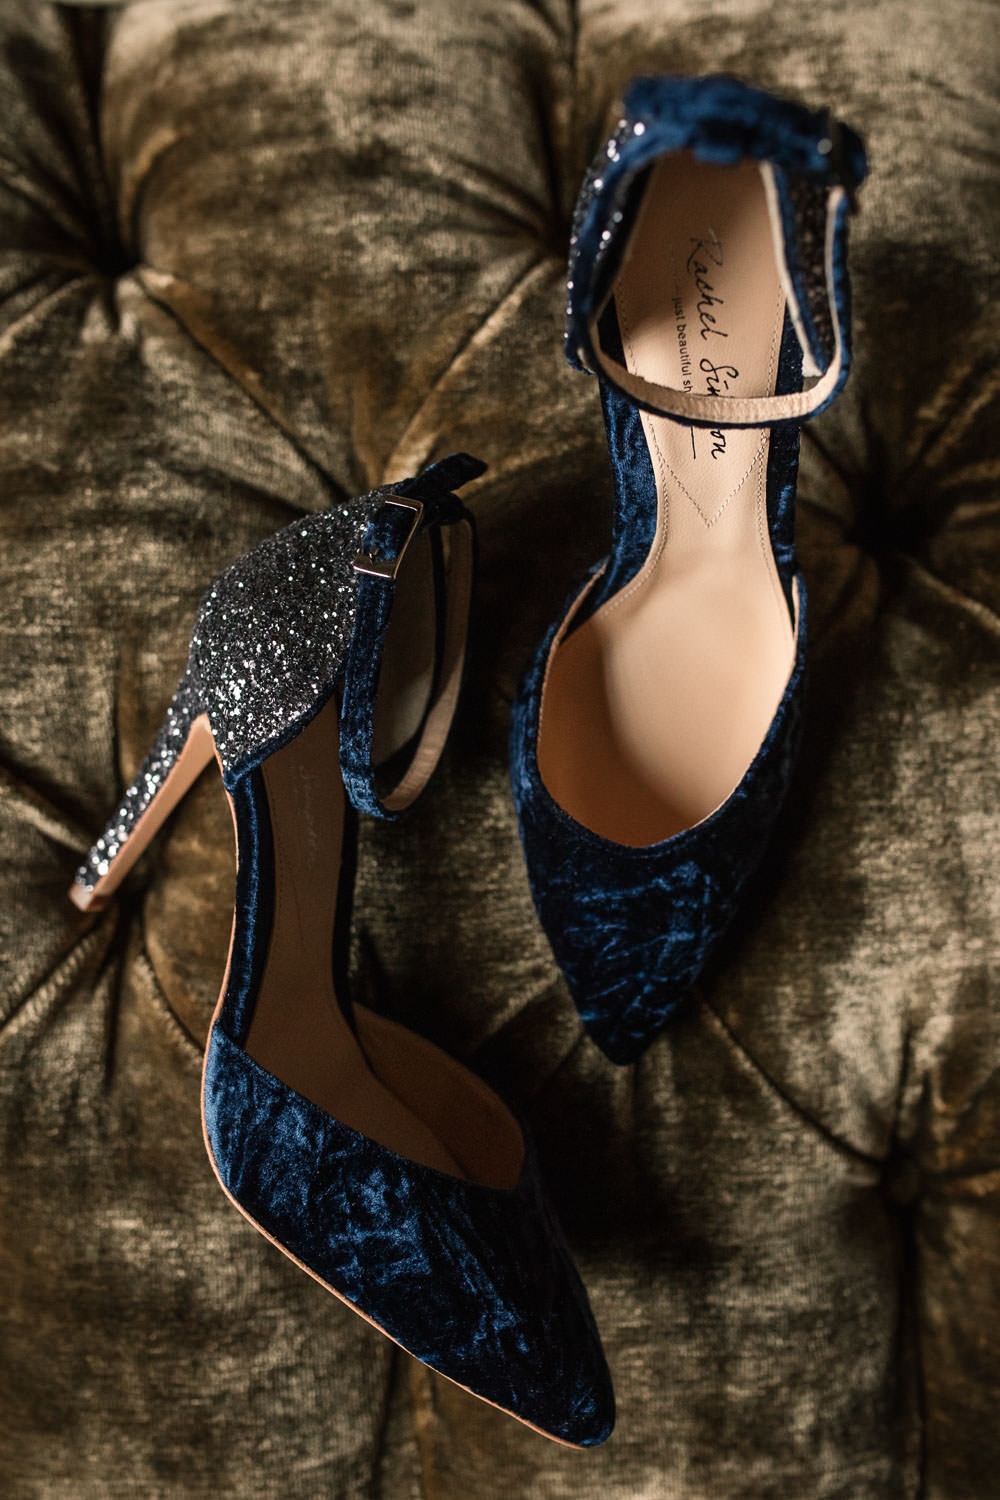 Navy Blue Shoes Bride Bridal Vevlet Glitter Winter Luxe Wedding Ideas Becky Harley Photography